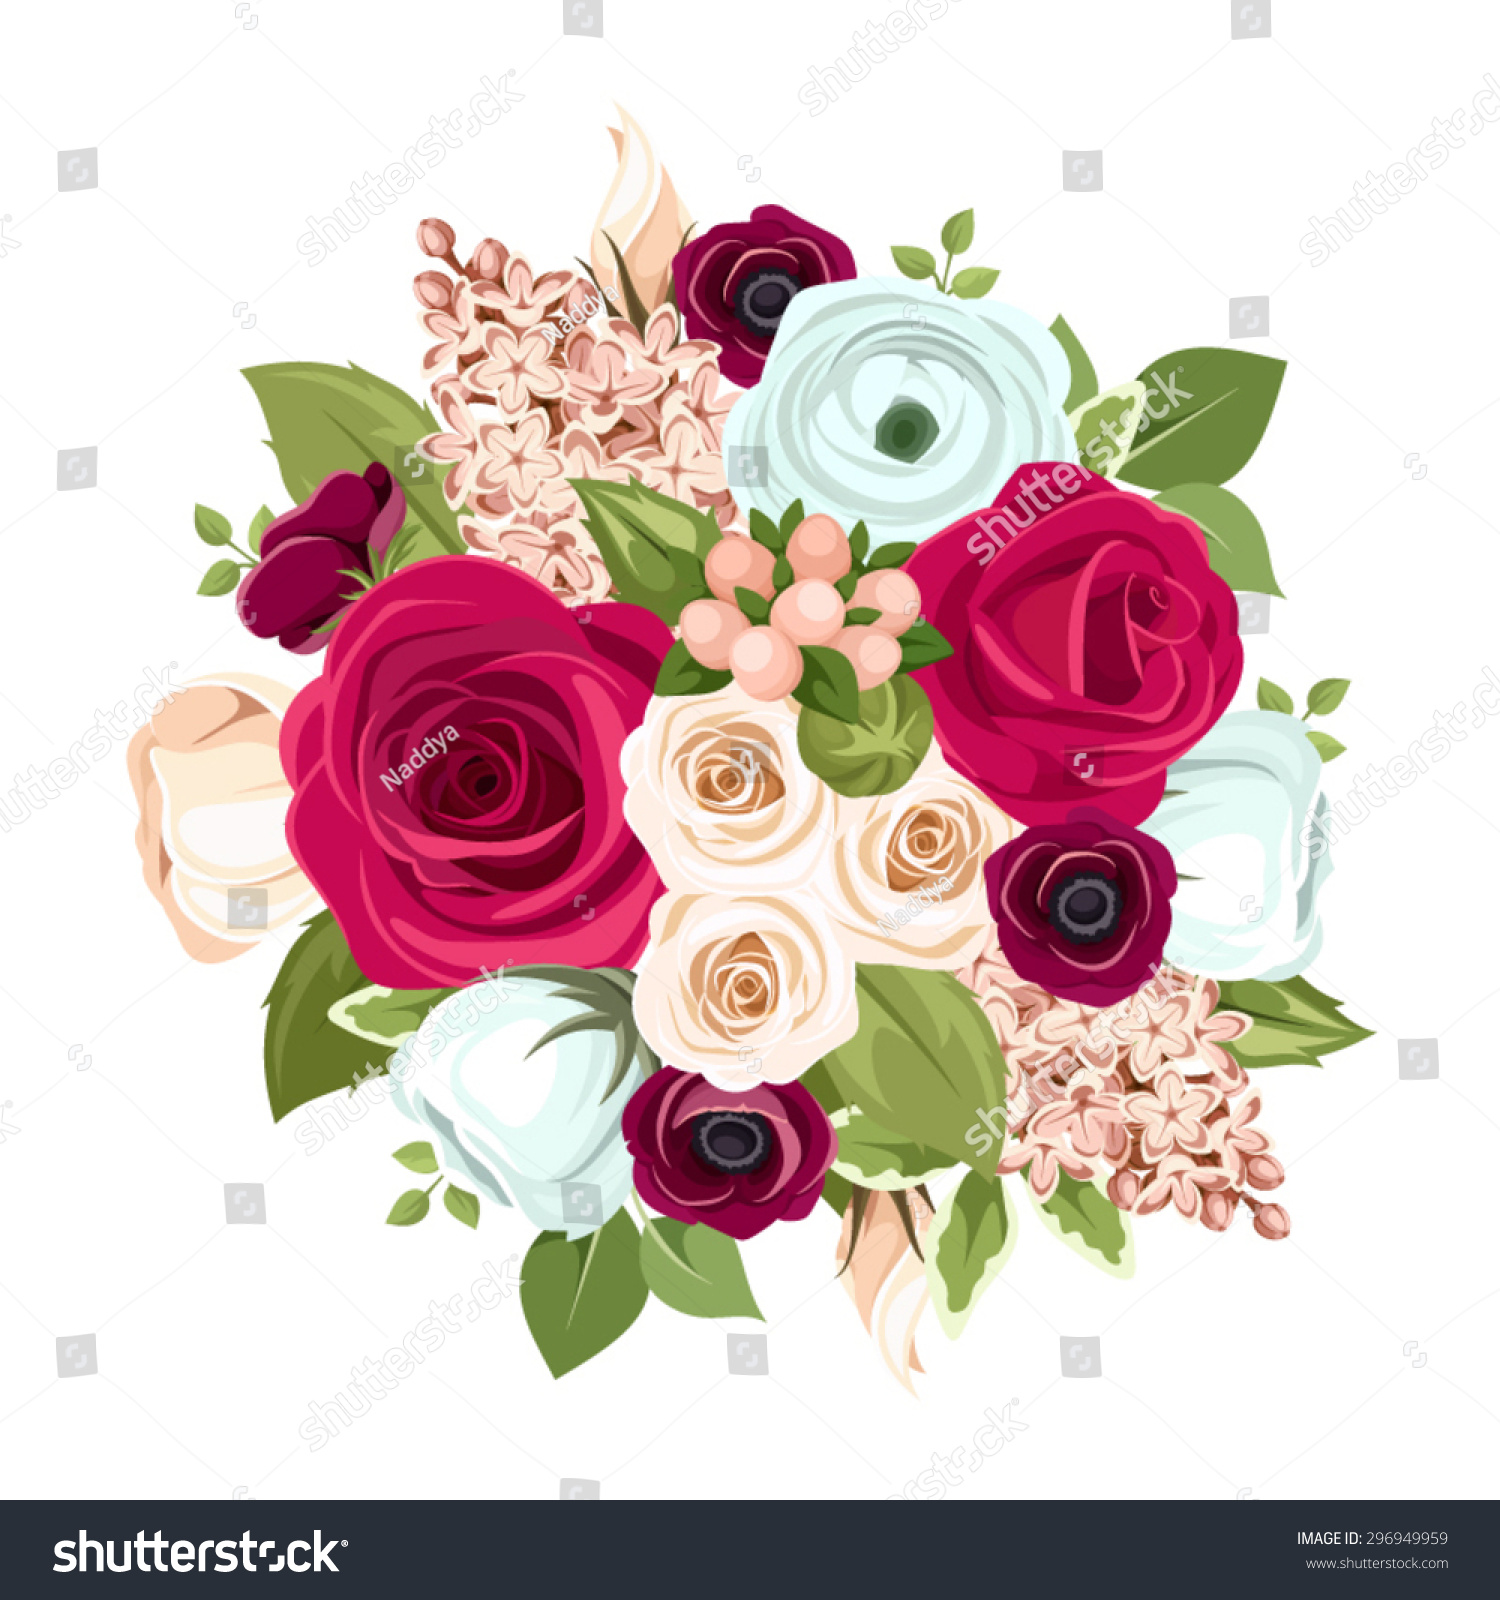 Vector Bouquet Red White Blue Roses Stock Vector 296949959 ...